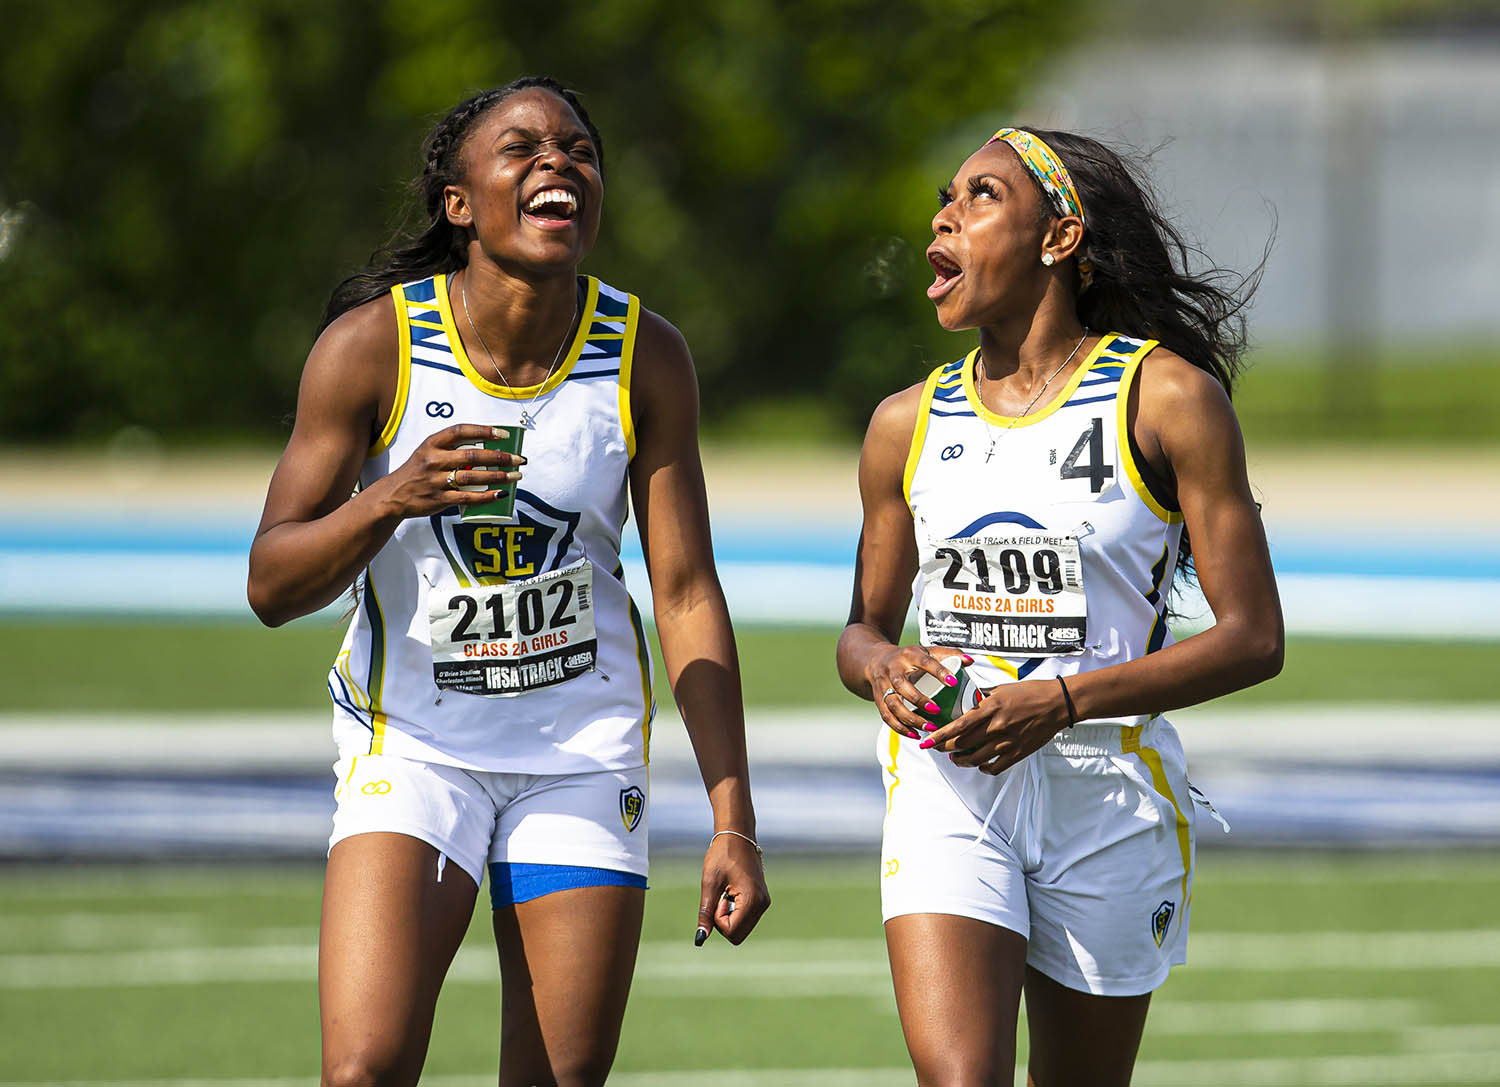 Southeast's Serena Bolden and Raven Moore joke around after finishing 1st and 3rd respectively in the Class 2A 200m Dash during the IHSA Girls Track & Field State Finals at O'Brien Field on the campus of Eastern Illinois University , Saturday, May 18, 2019, in Charleston, Ill. [Justin L. Fowler/The State Journal-Register]